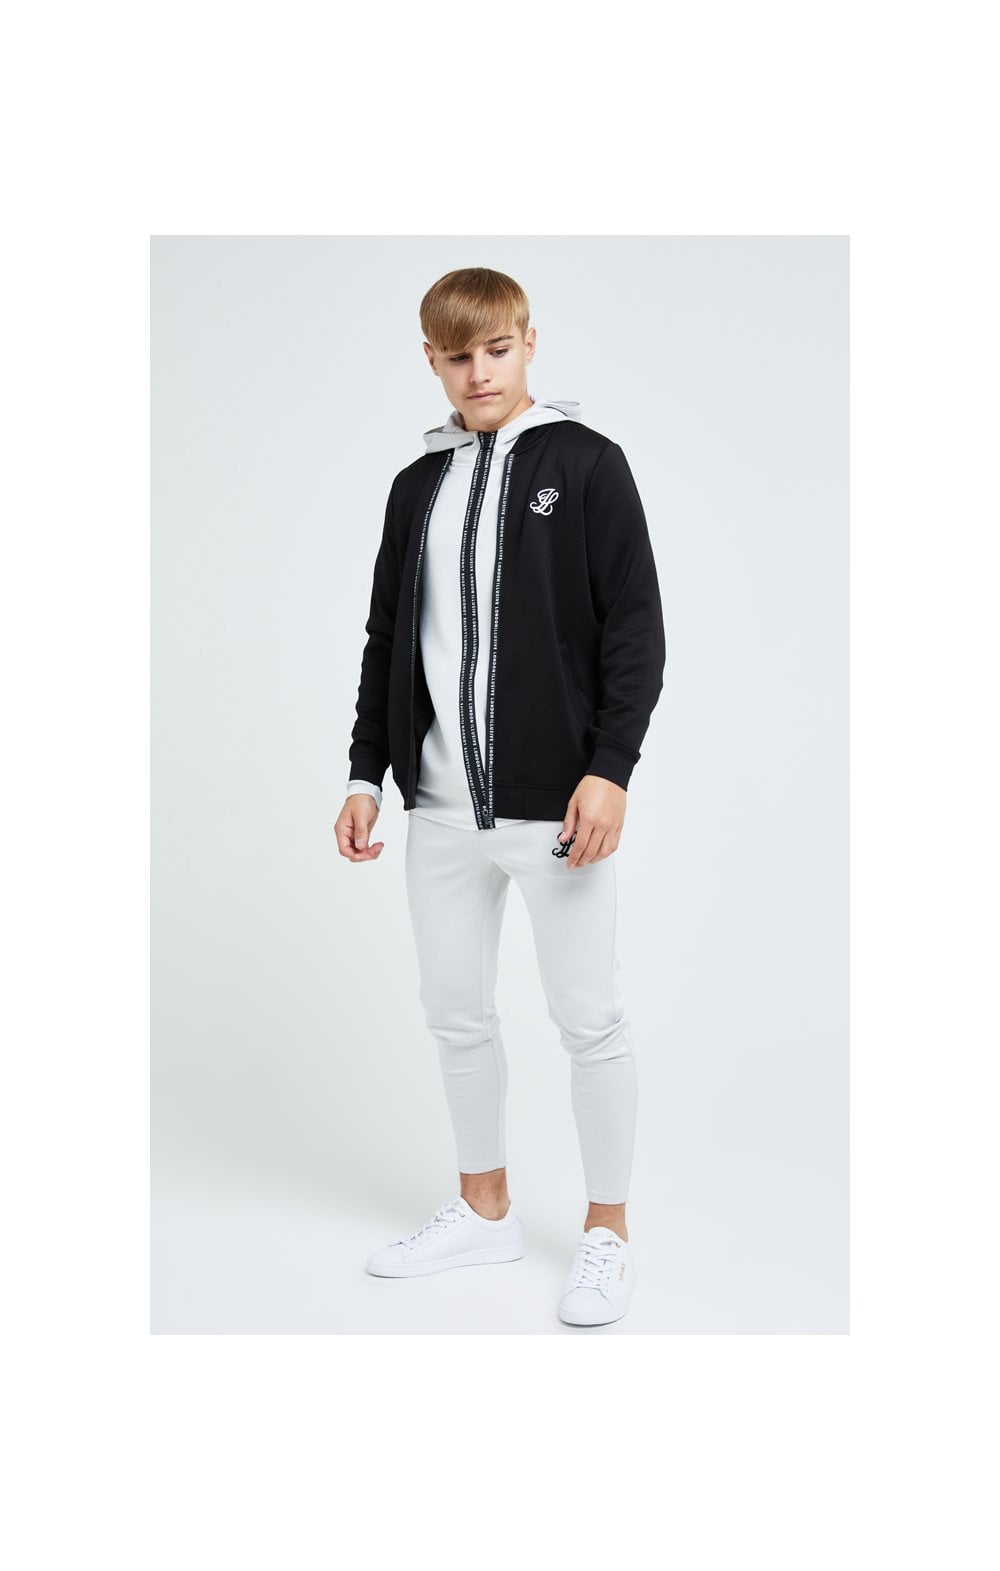 Illusive London Apex Bomber - Black (3)